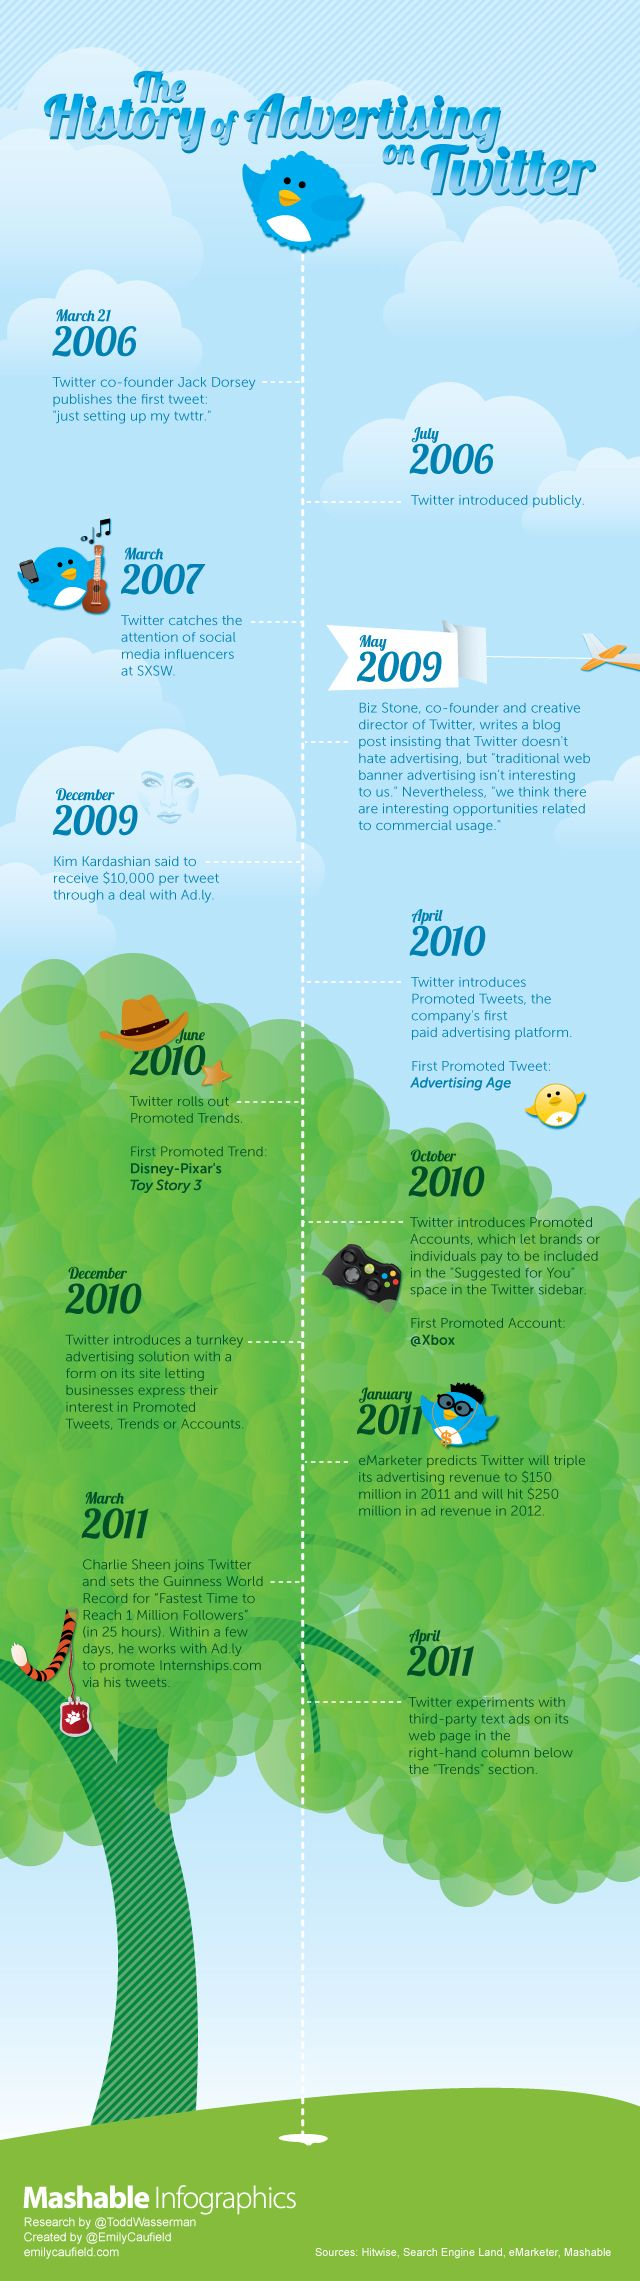 Digital Advertising, Twitter   The History of Advertising on Twitter    http://www.seoandcompany.co